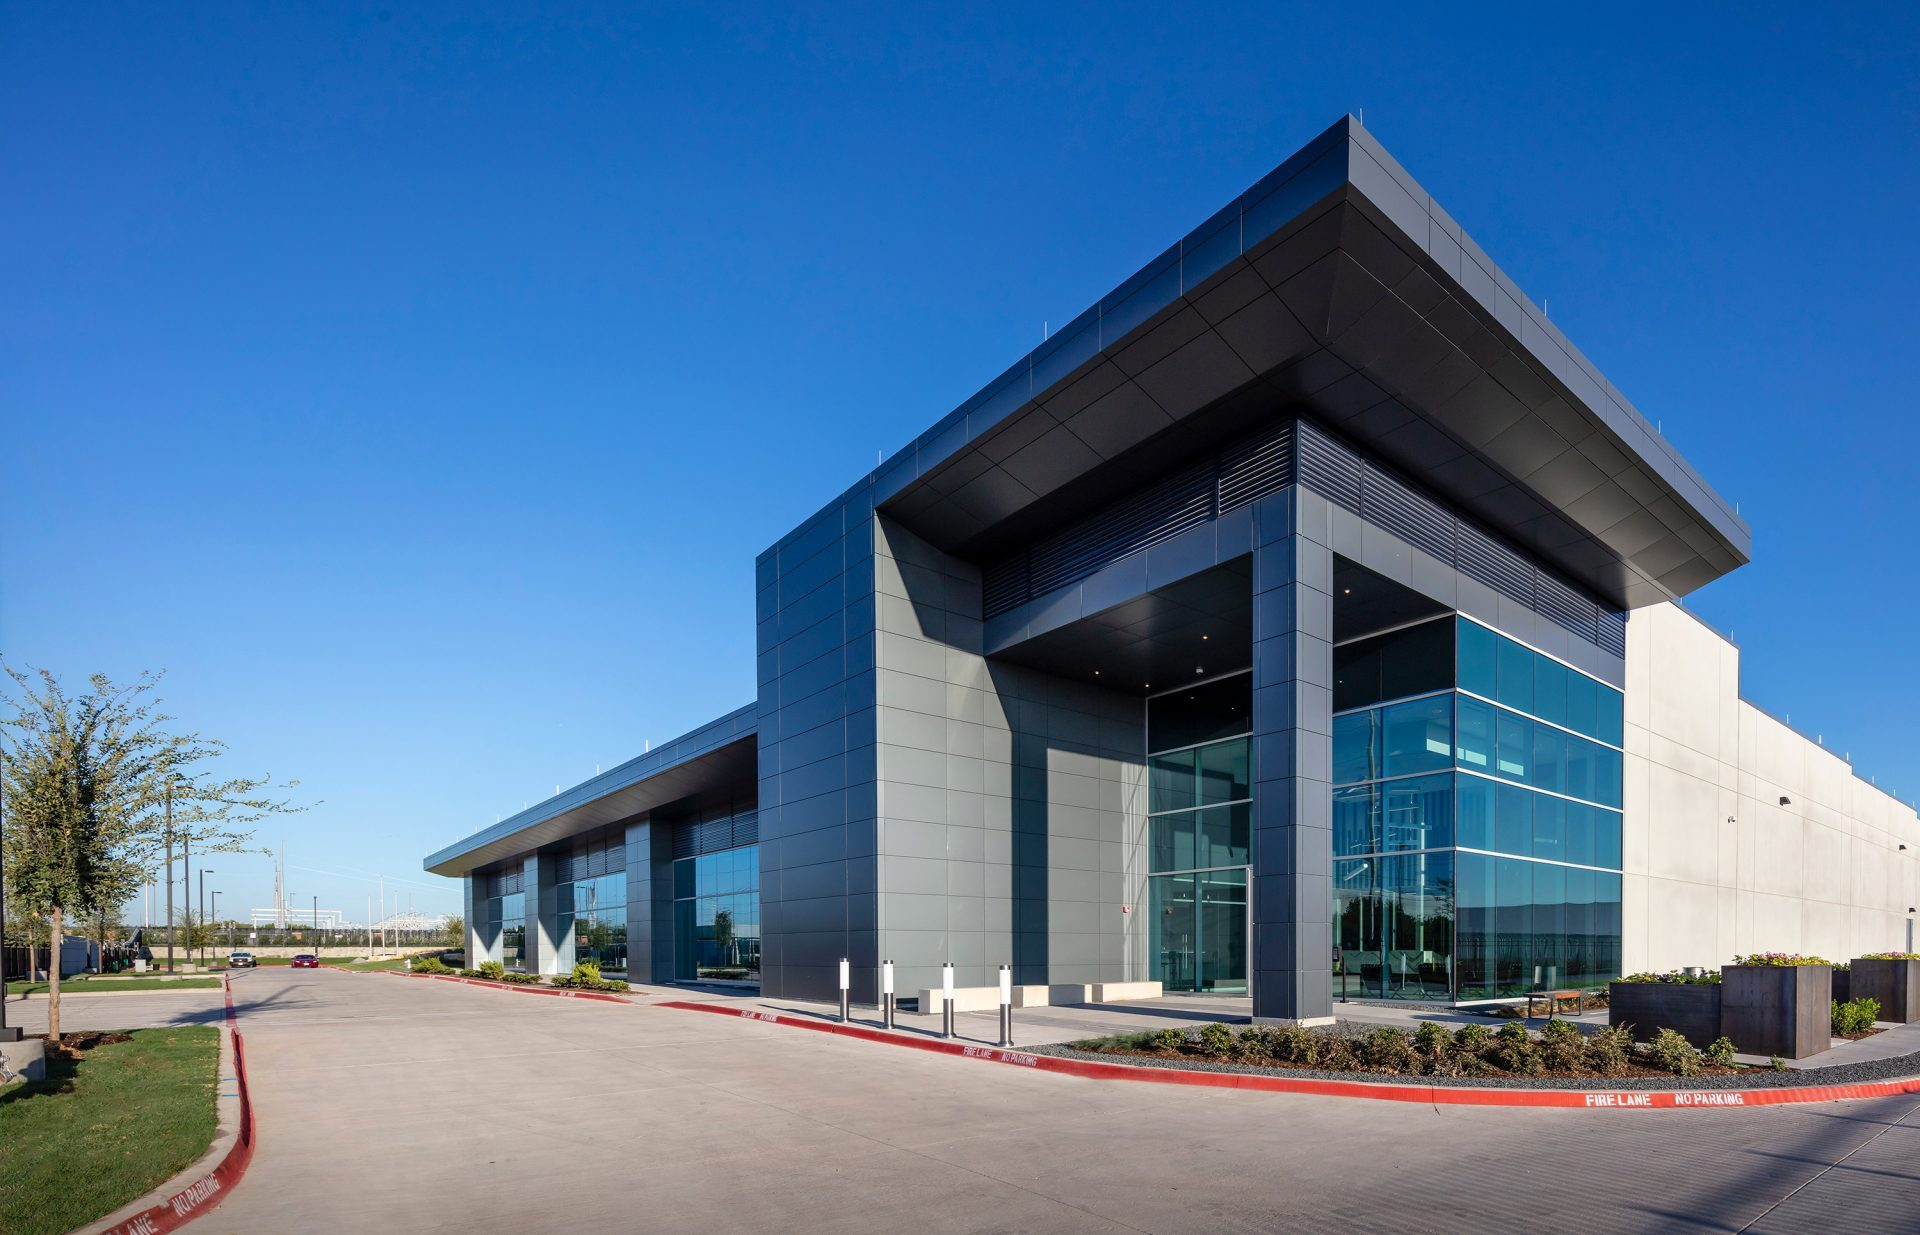 Commissions New Hyperscale Data Center in Garland, Texas